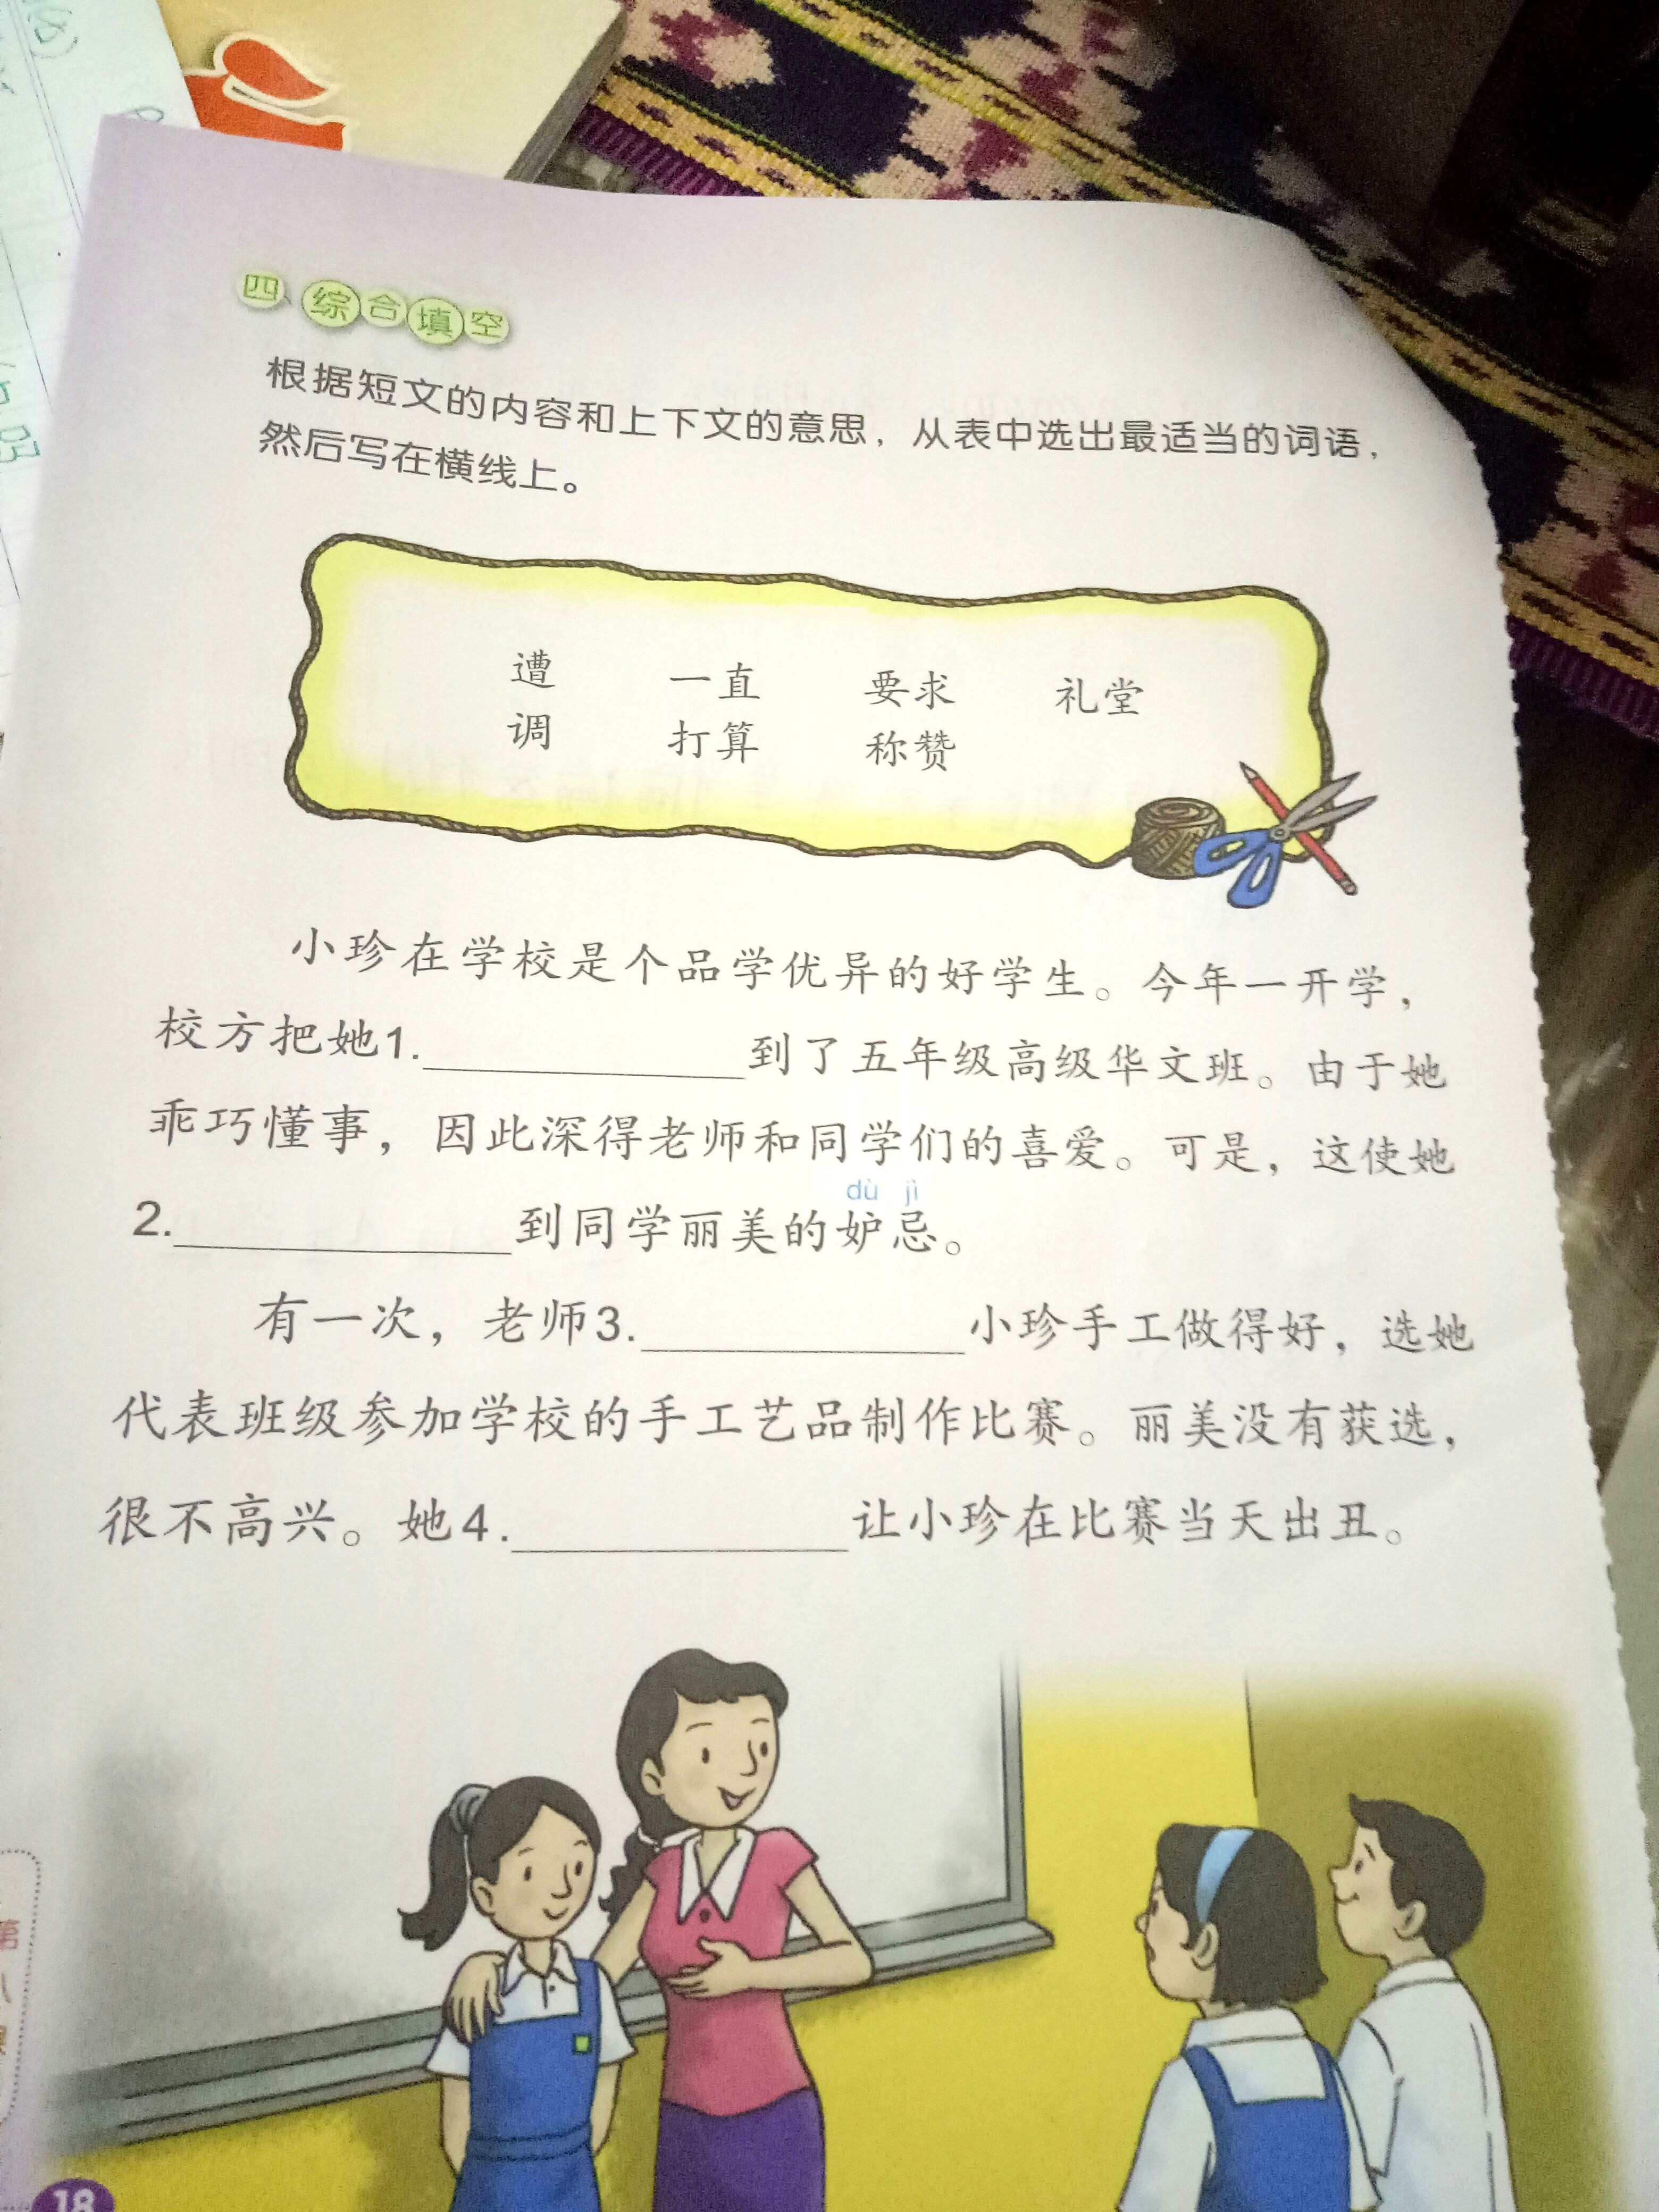 How do I do this? P.S Im not very good in Chinese - Ask